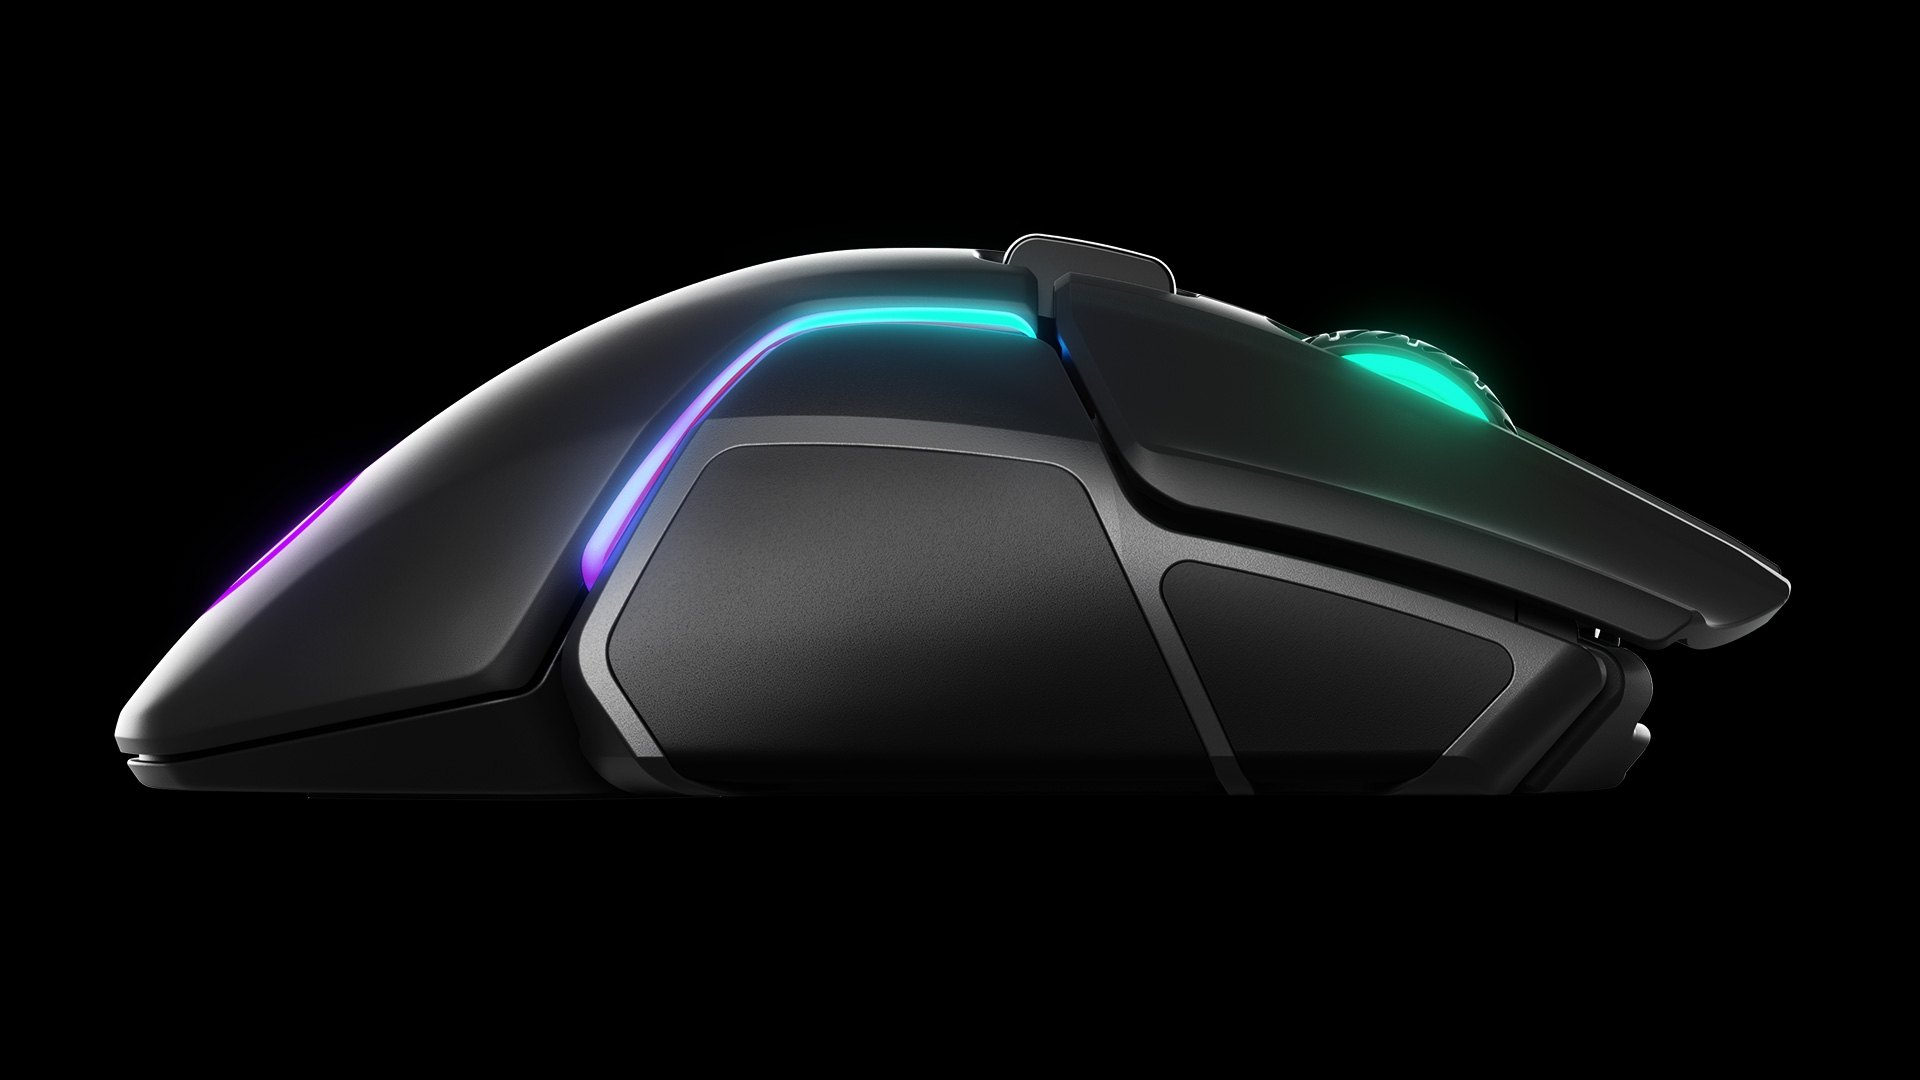 Side view of the mouse render floating